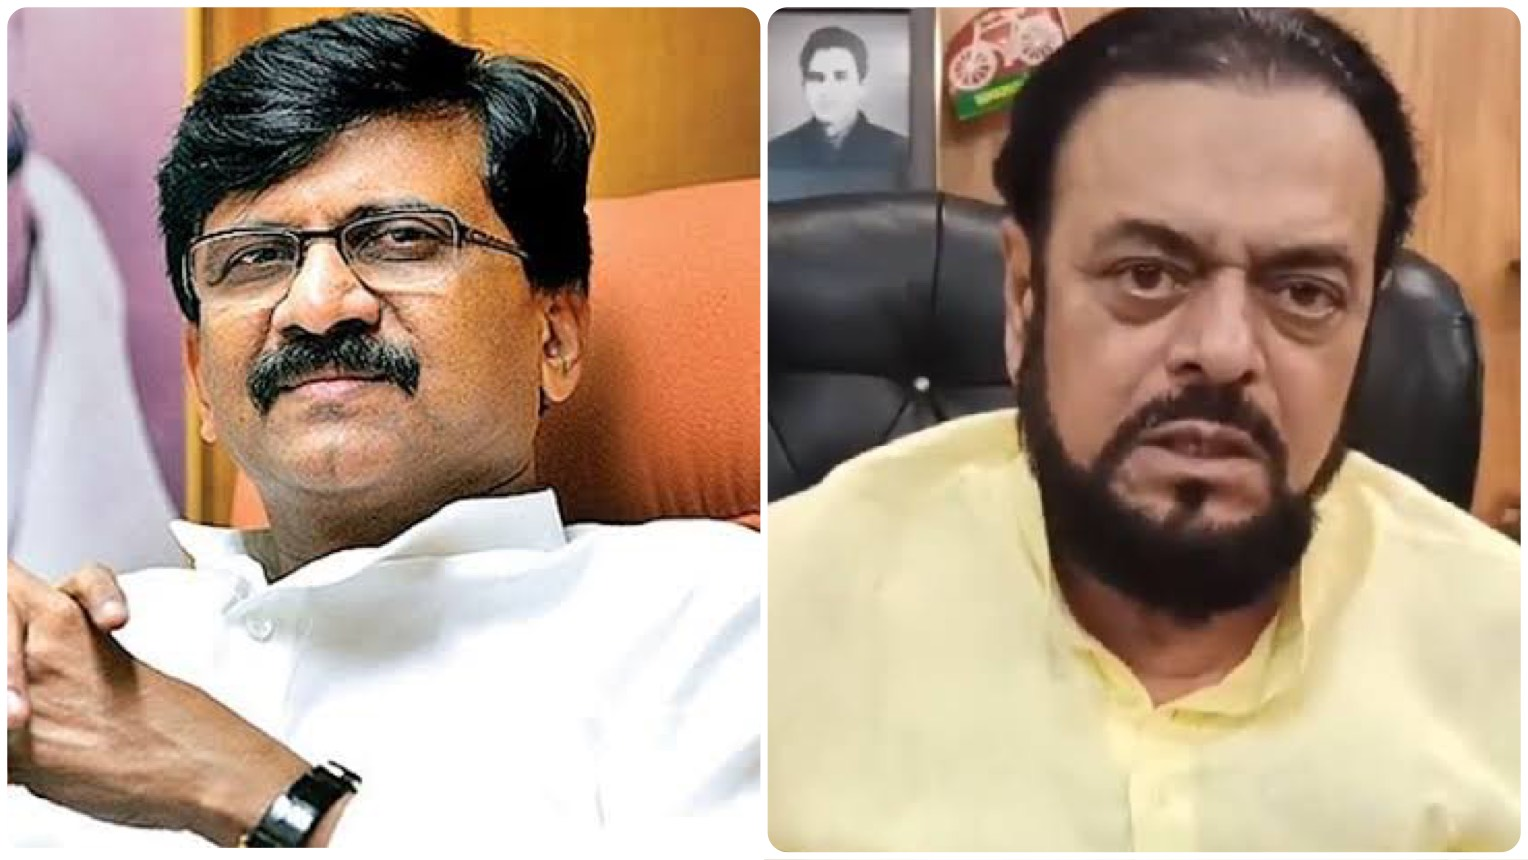 Aurangabad renaming row: SP leader Abu Azmi who called Balasaheb Thackeray 'old and senile' hailed by Shiv Sena's Sanjay Raut